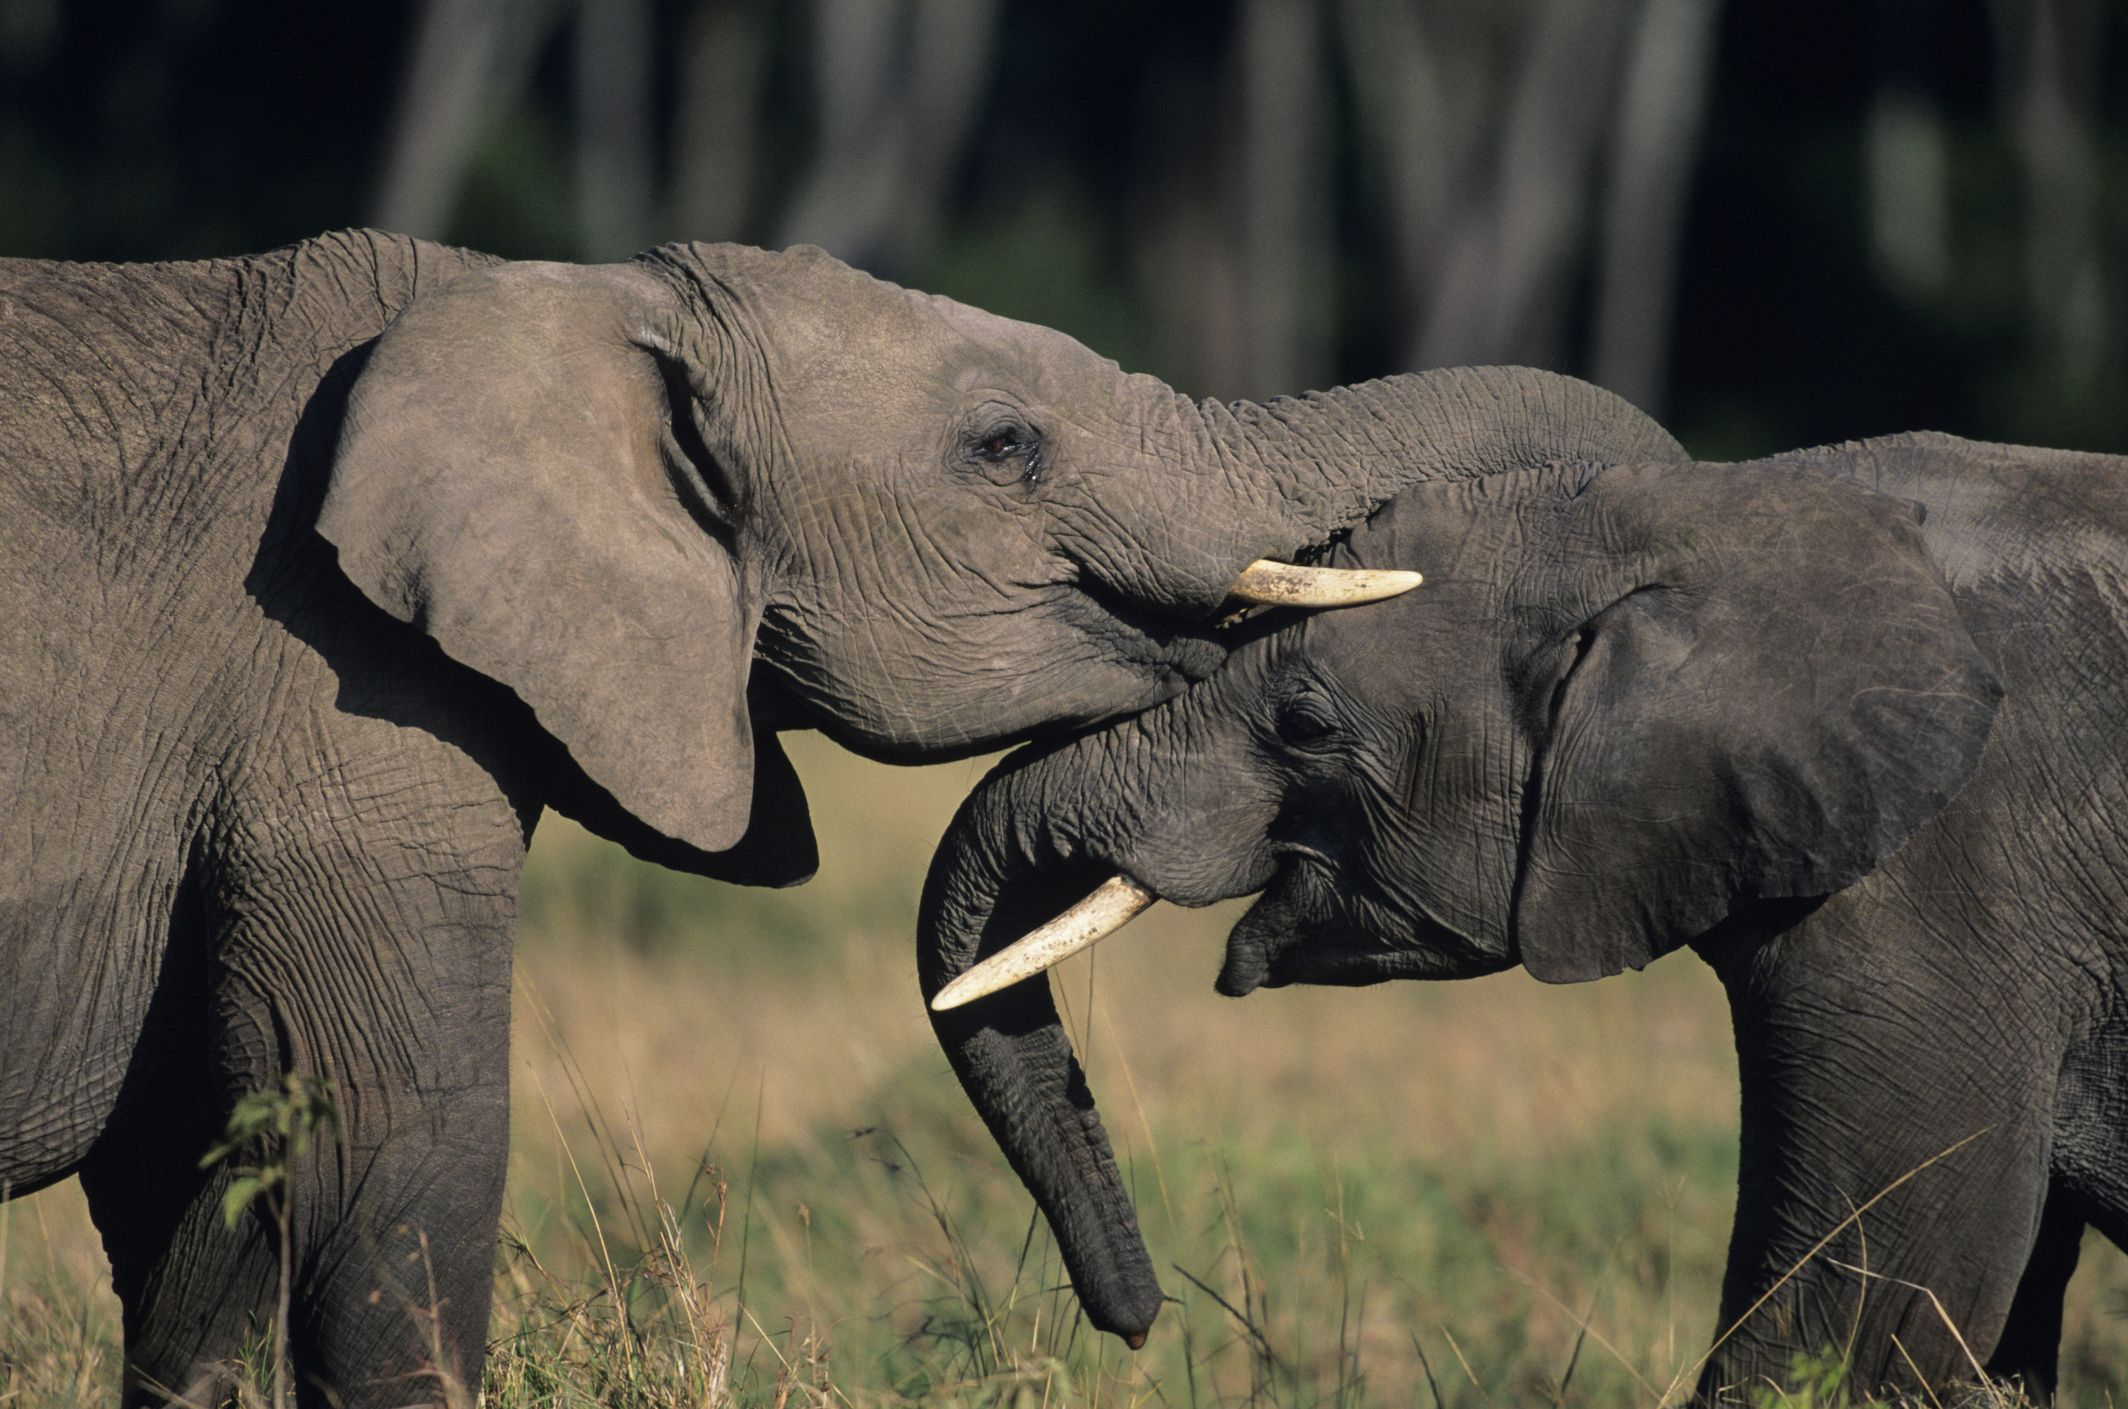 They hug their trunks to say hello to each other.